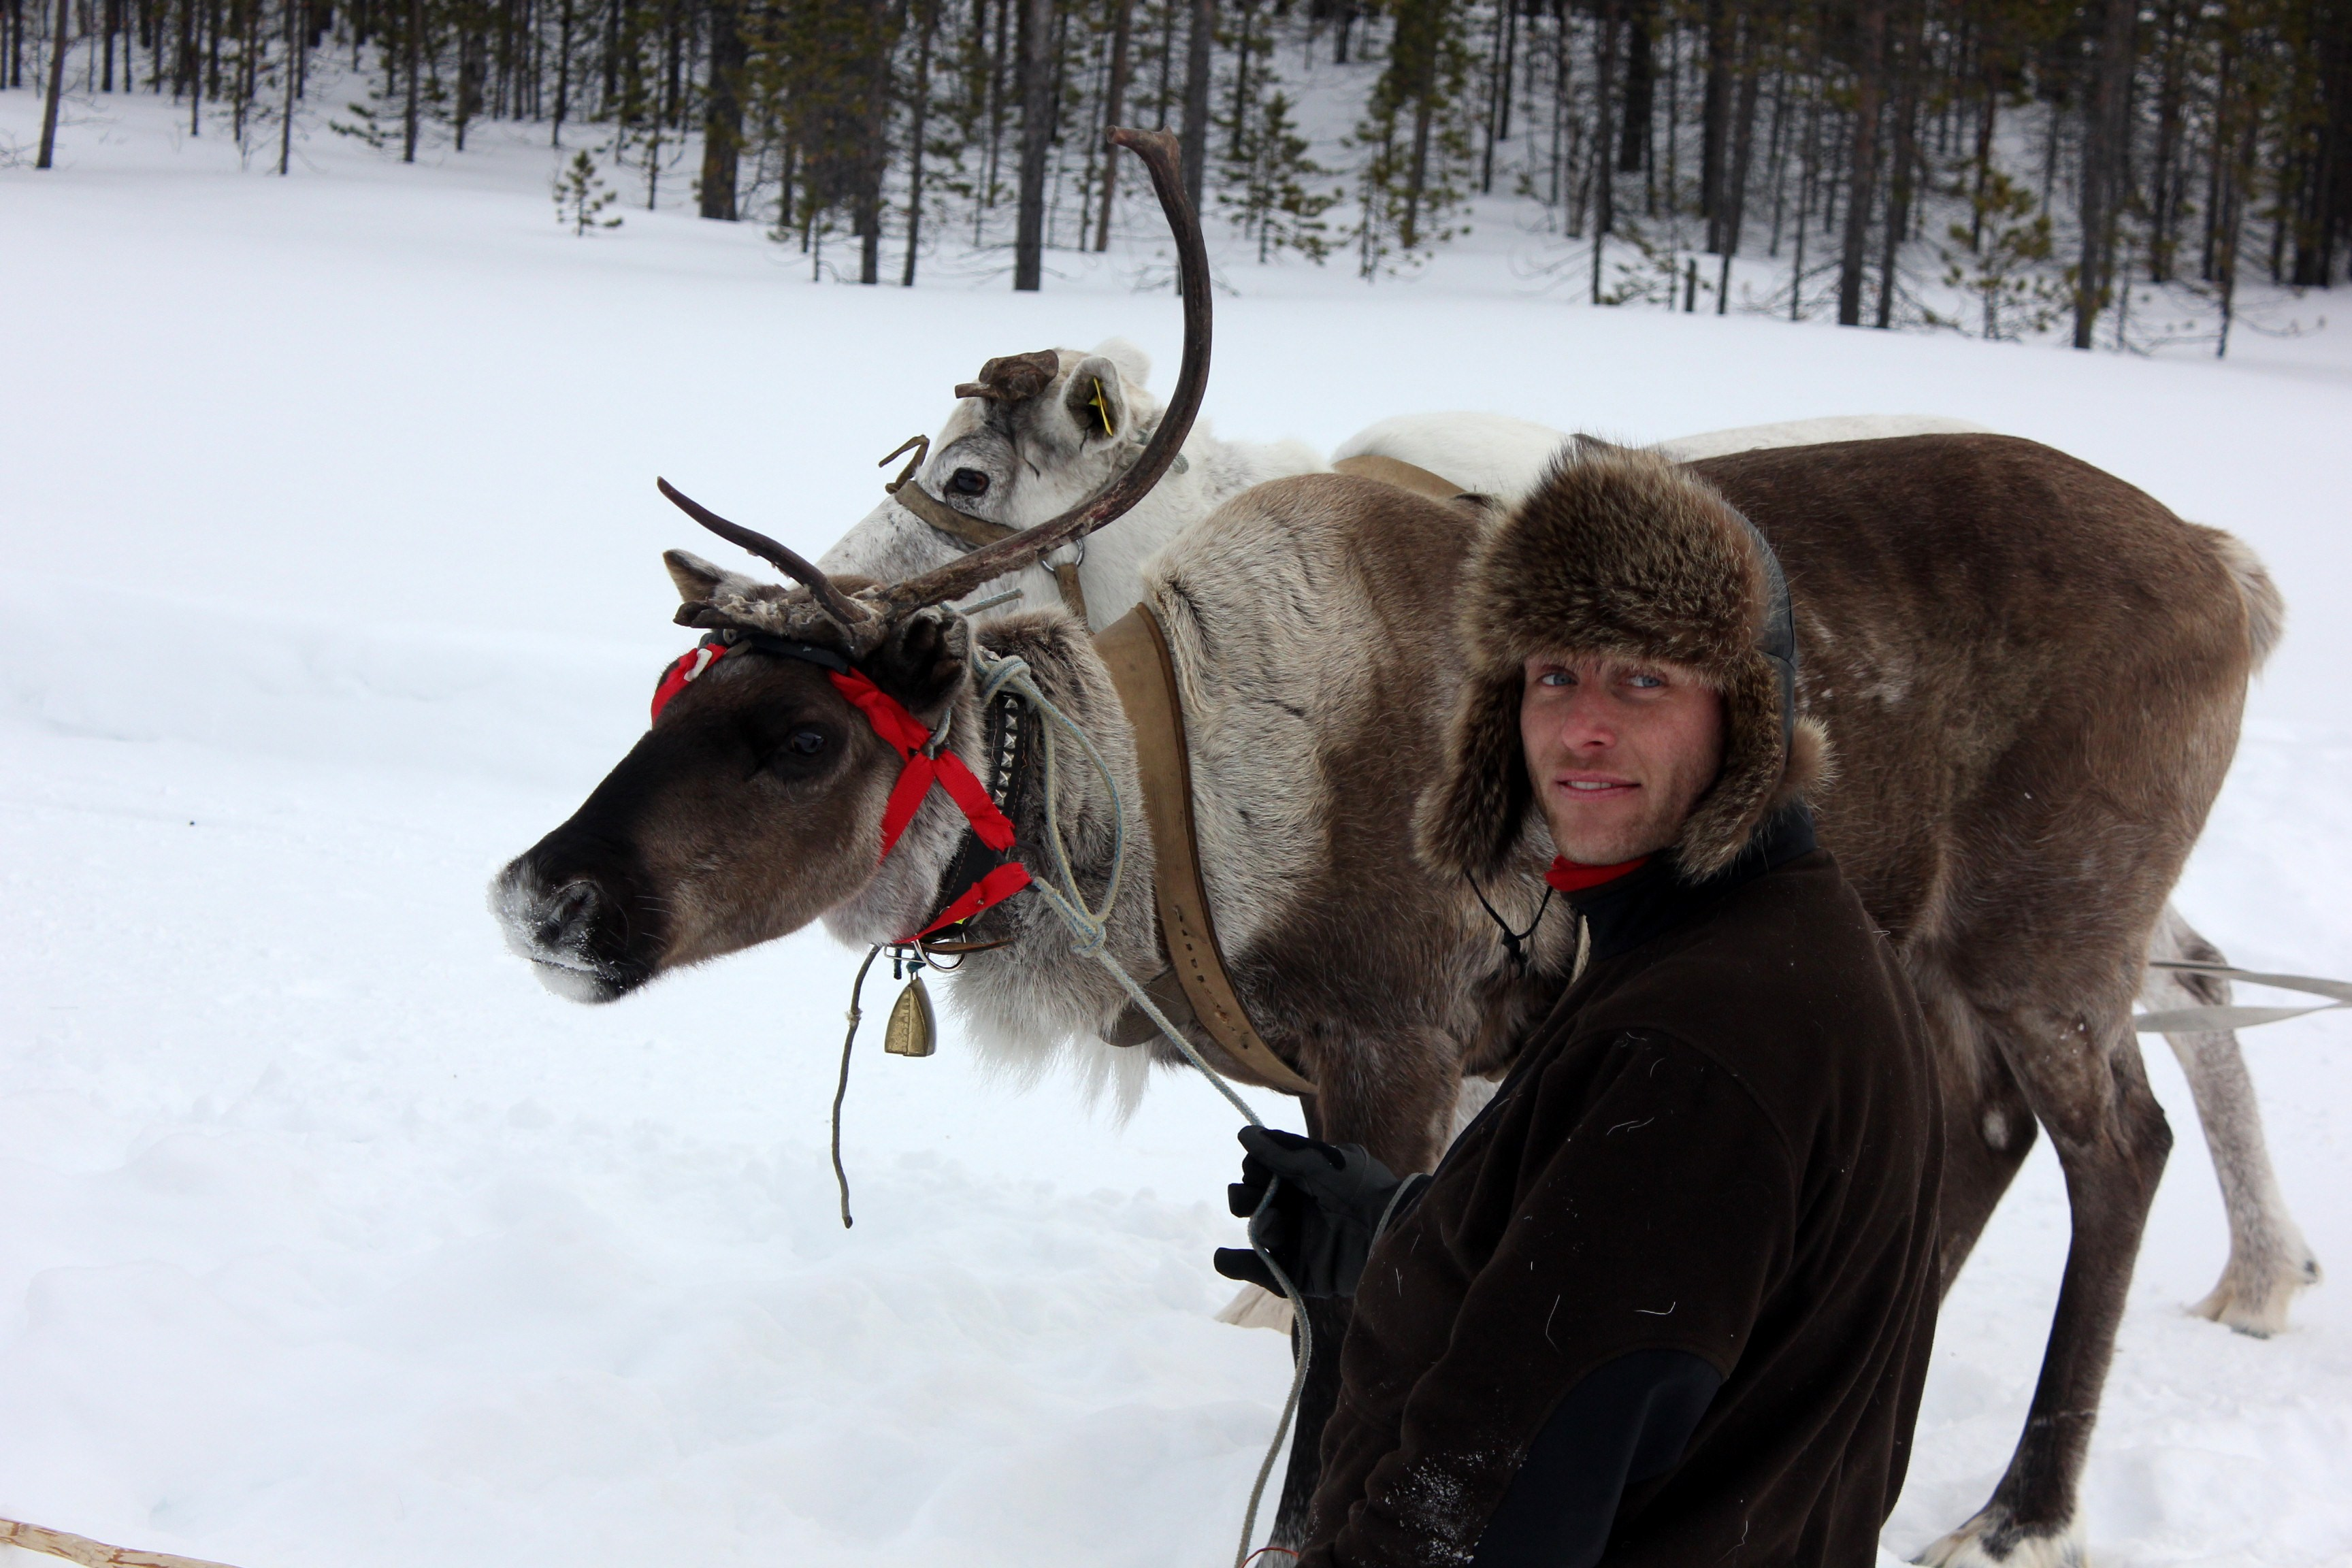 A sami man in murmansk